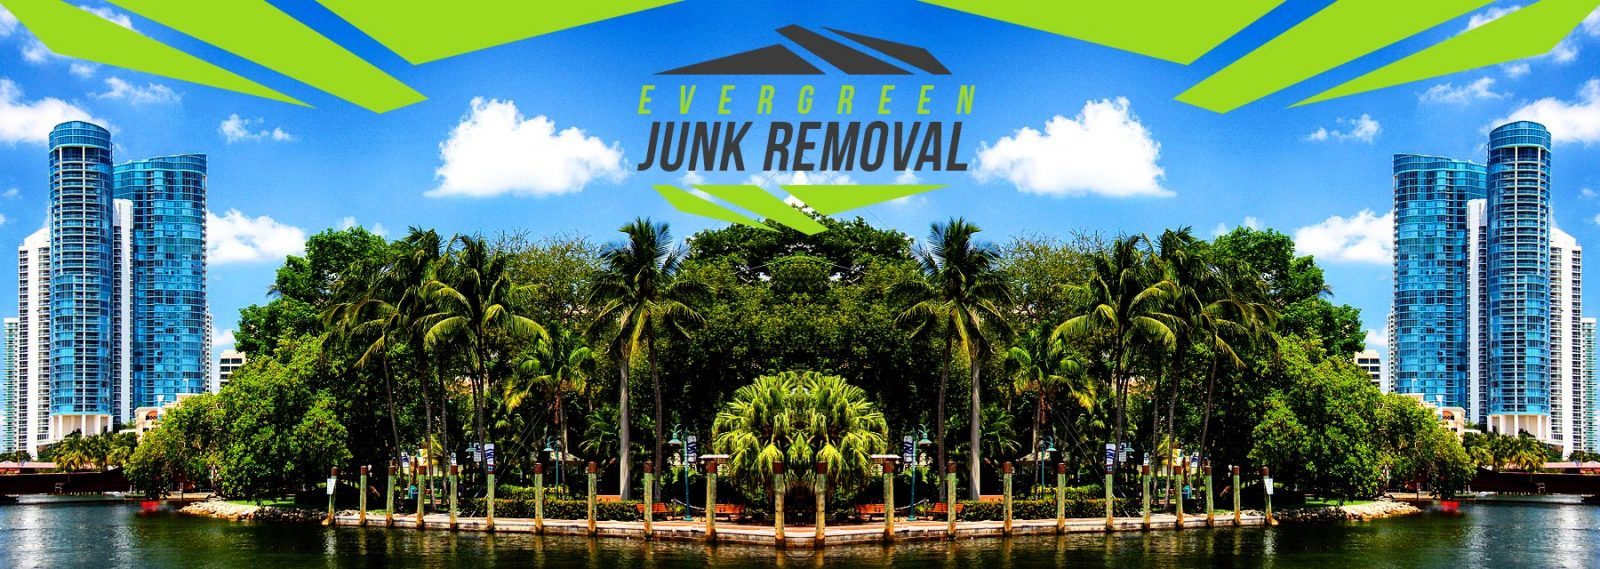 Wilton Manors Hot Tub Removal Company